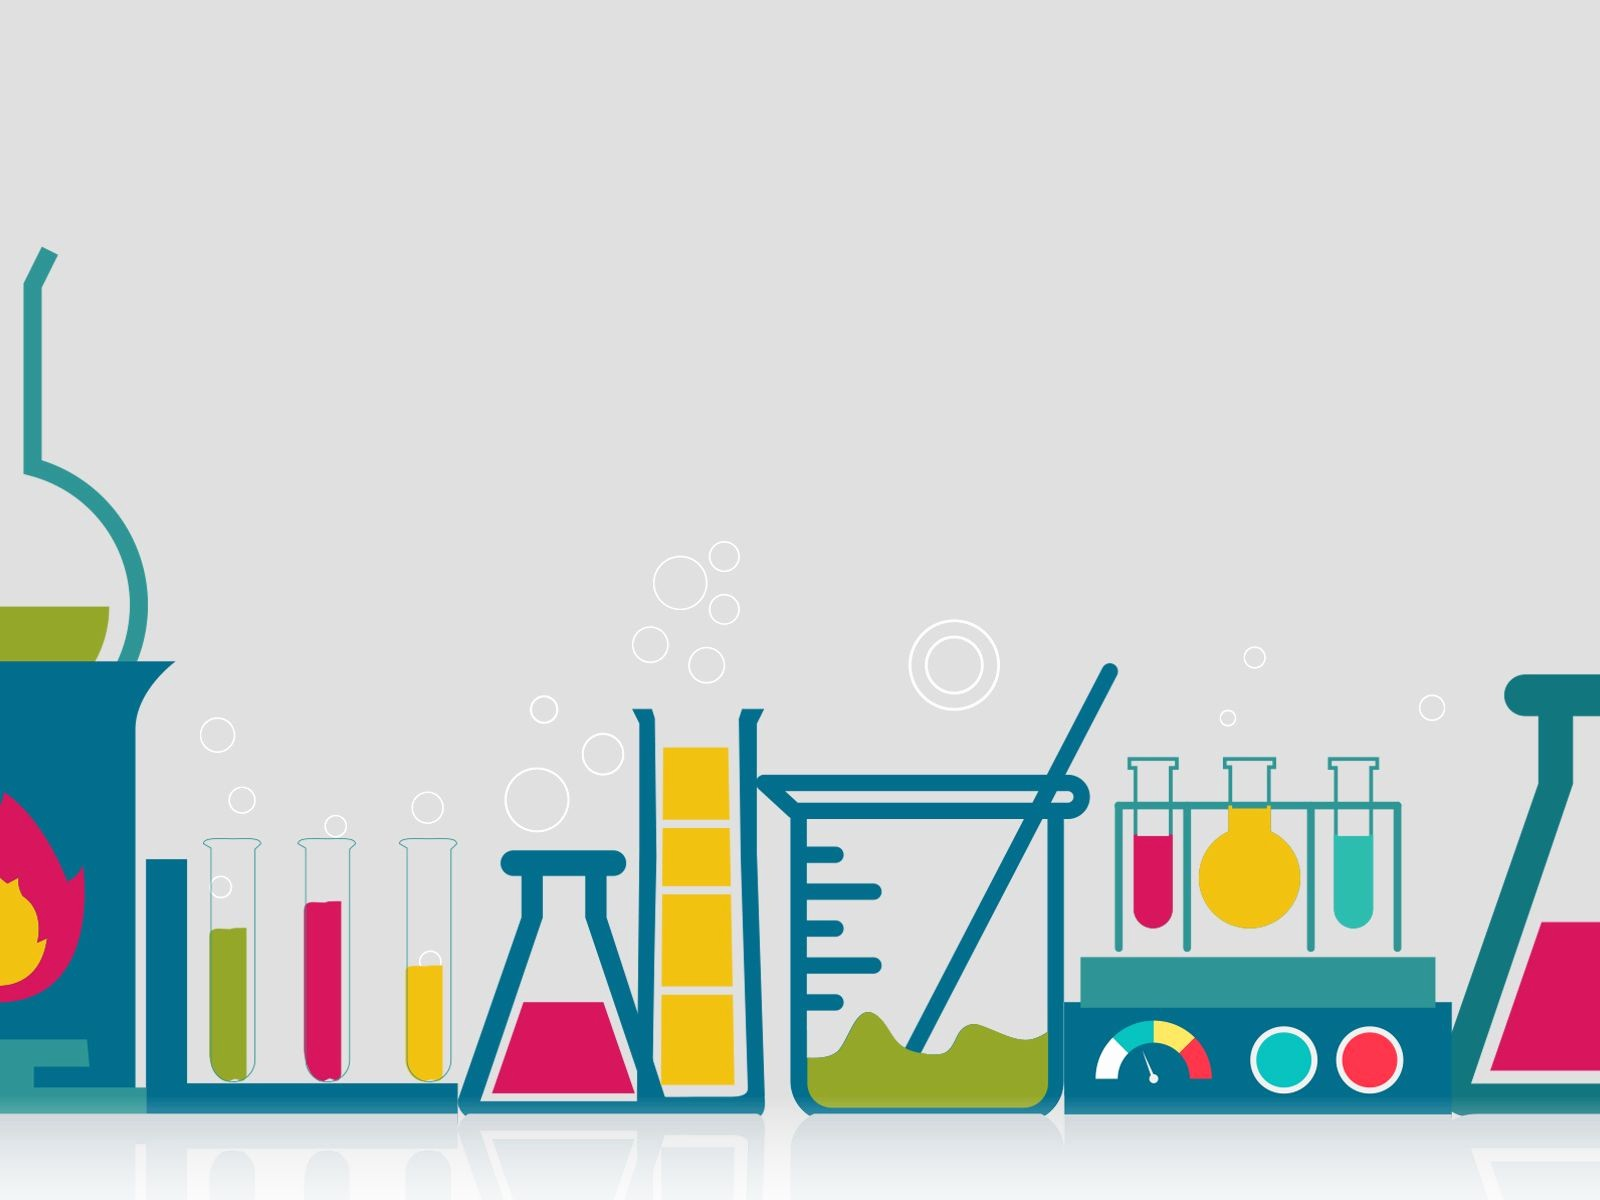 Science Powerpoint Templates Free Download Awesome This Chemistry Powerpoint Background is A Simple Design